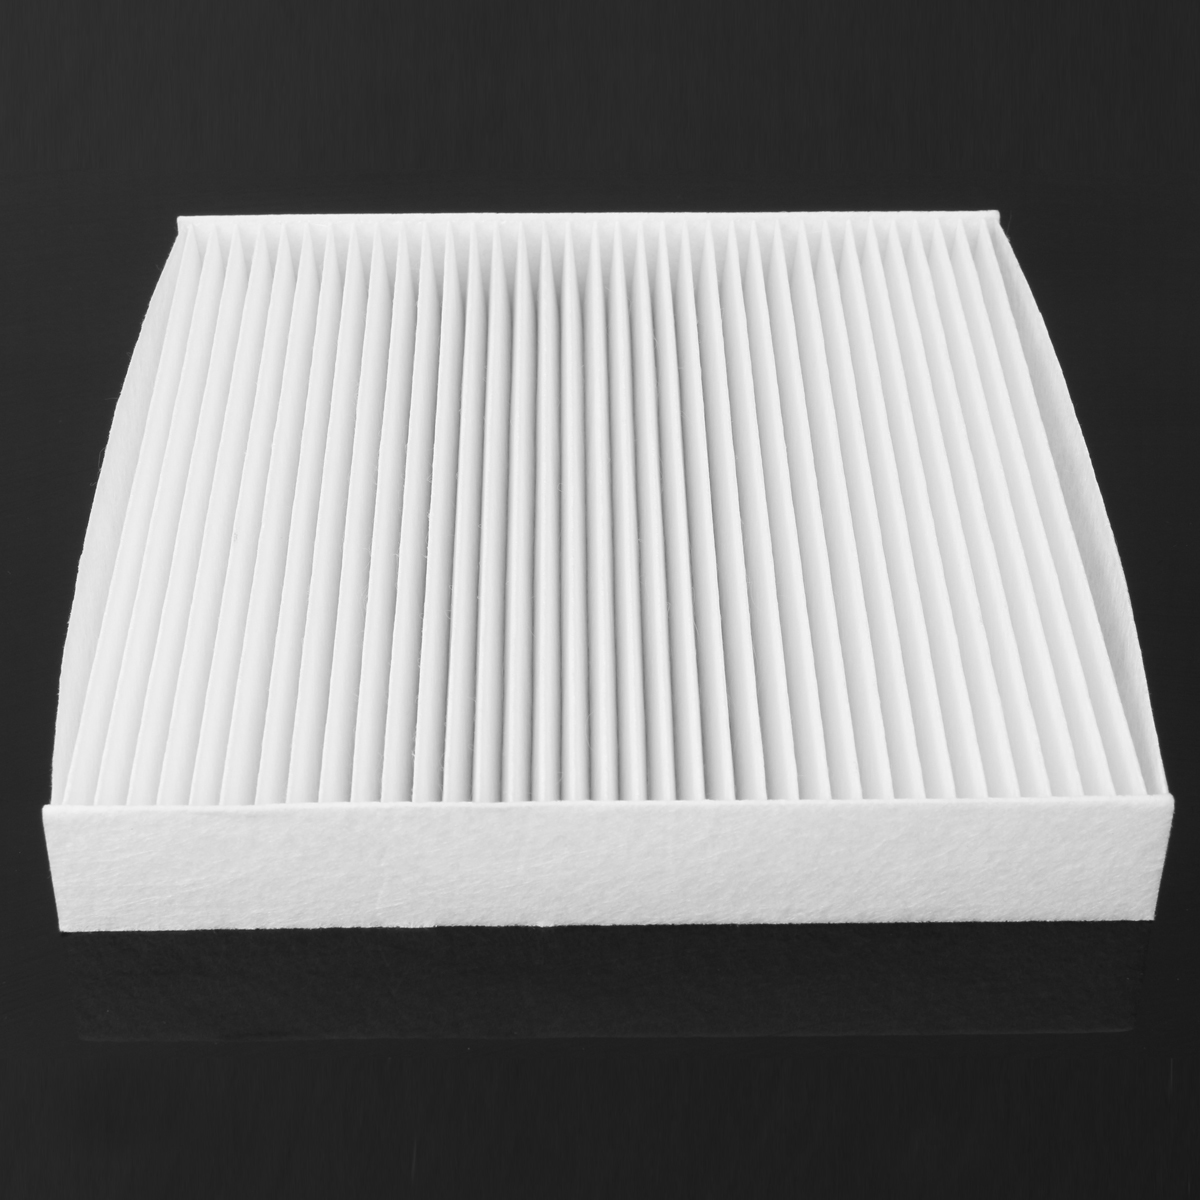 white fiber cabin air filter for 2006 2014 toyota rav4 tundra 07 14 yaris camry lazada malaysia. Black Bedroom Furniture Sets. Home Design Ideas